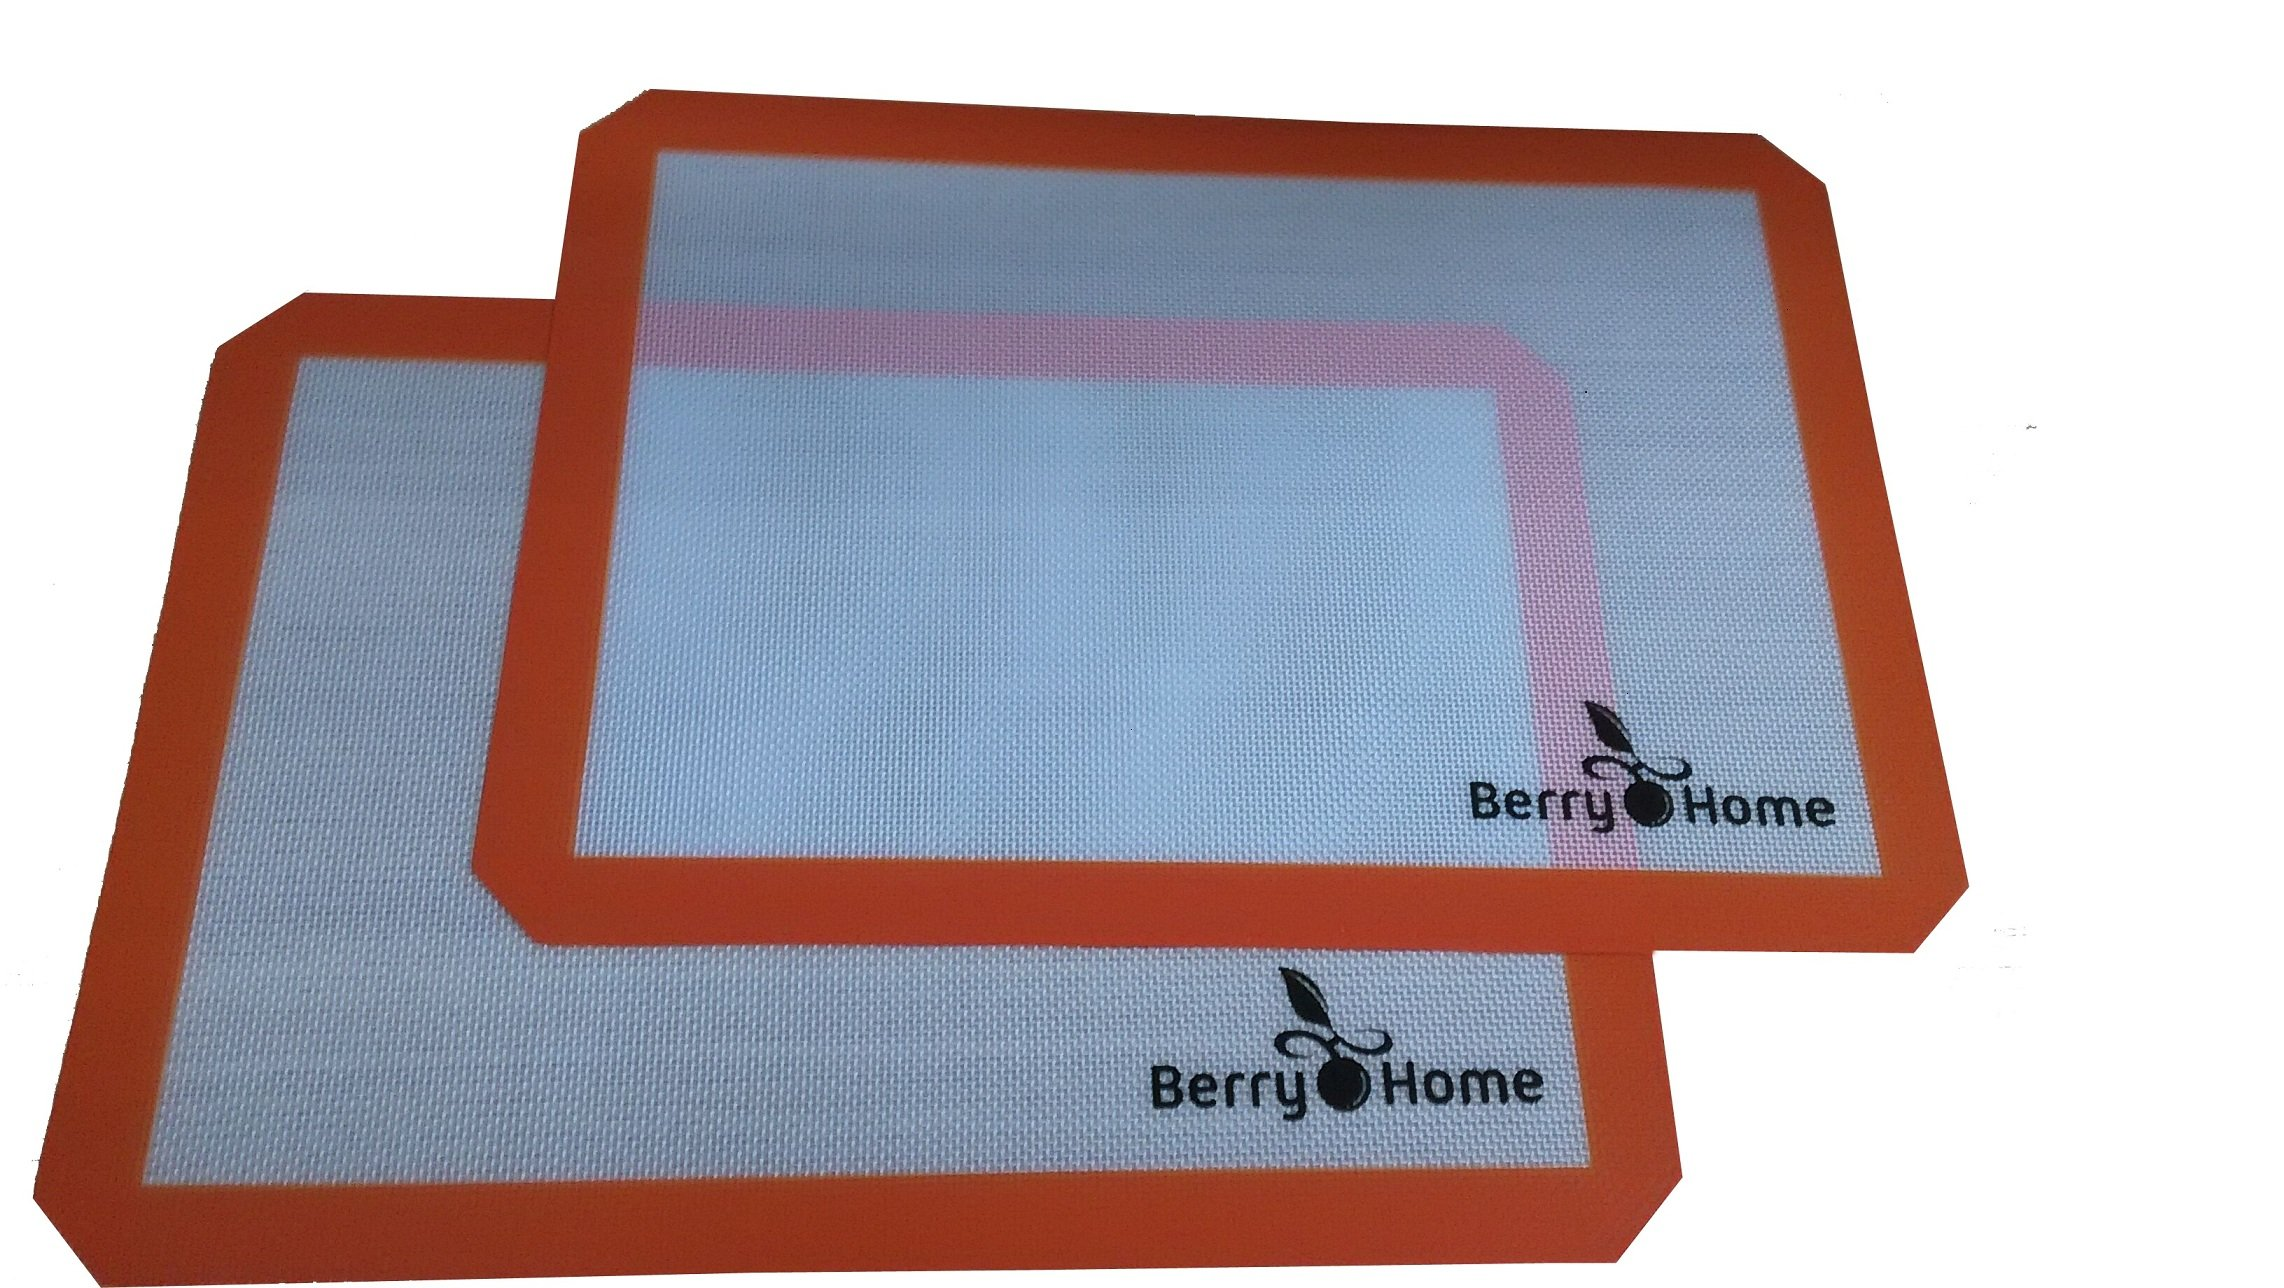 Silicone Baking Mat Parchment Replacement for Baking and Rolling Pizza Dough by Berry Home - 2 Pack by Berry Home (Image #1)